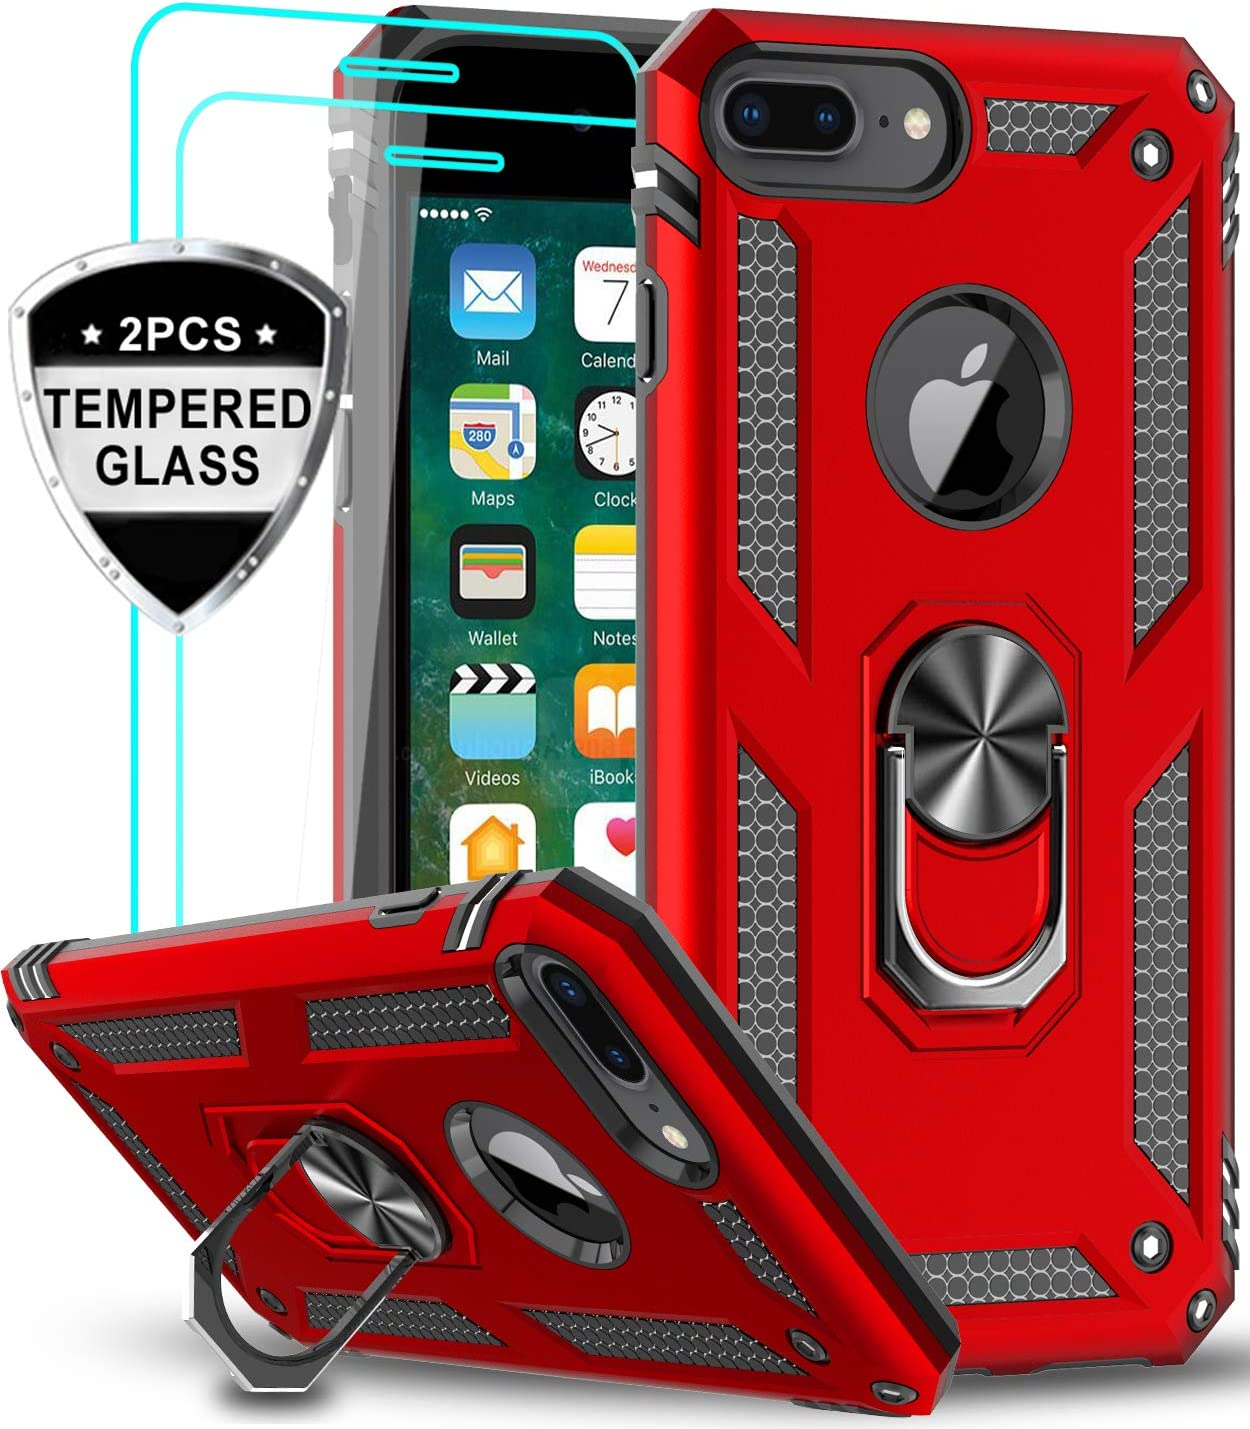 iPhone 8 Plus Case, iPhone 7 Plus Case, iPhone 6 Plus Case with Tempered Glass Screen Protector [2Pack], LeYi Military Grade Phone Case with Rotating Holder Kickstand for Apple iPhone 6s Plus, Red